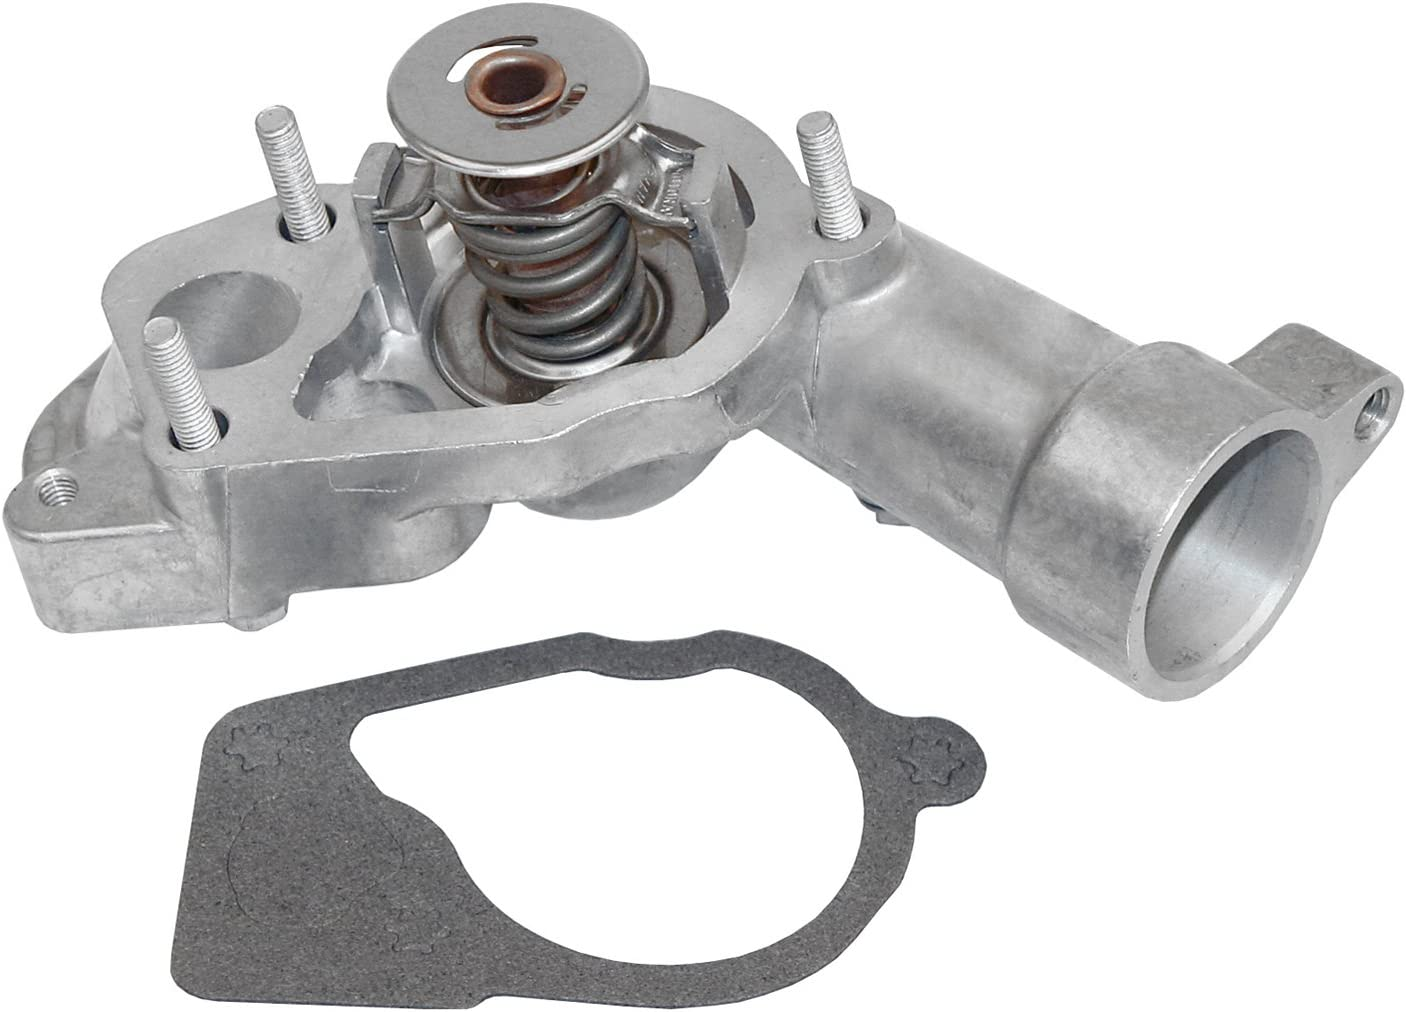 Beck Arnley Thermostats Thermostat 143-0844